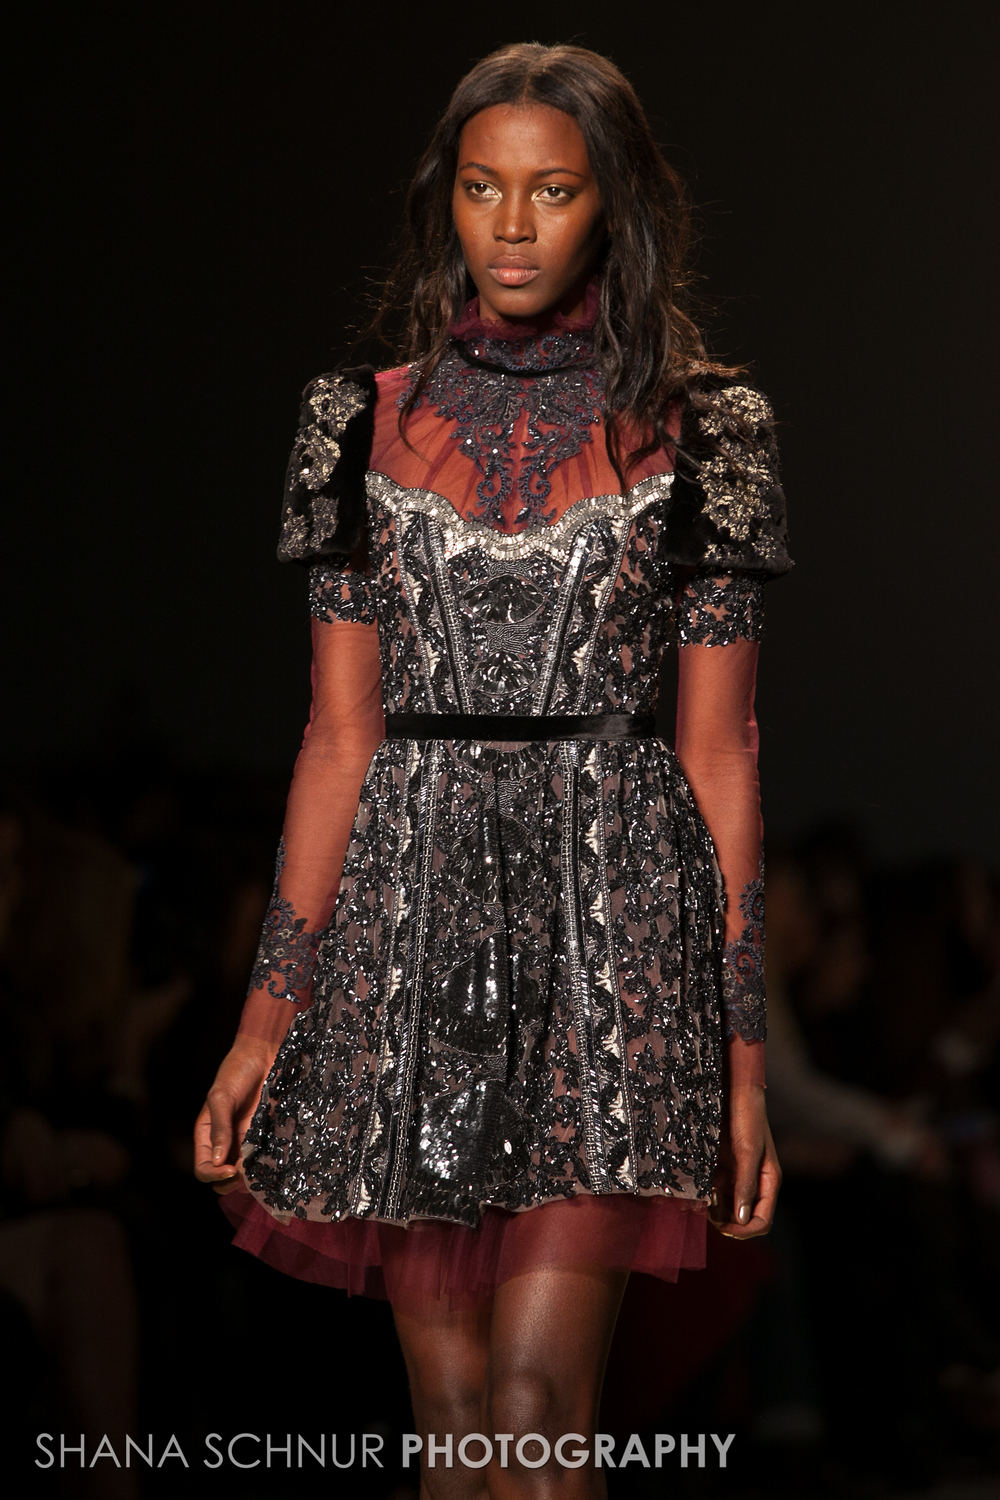 Reem-Acra-New-York-Fashion-Week-Fall-Winter-2015-Shana-Schnur-Photography-IMG_9706-048.jpg